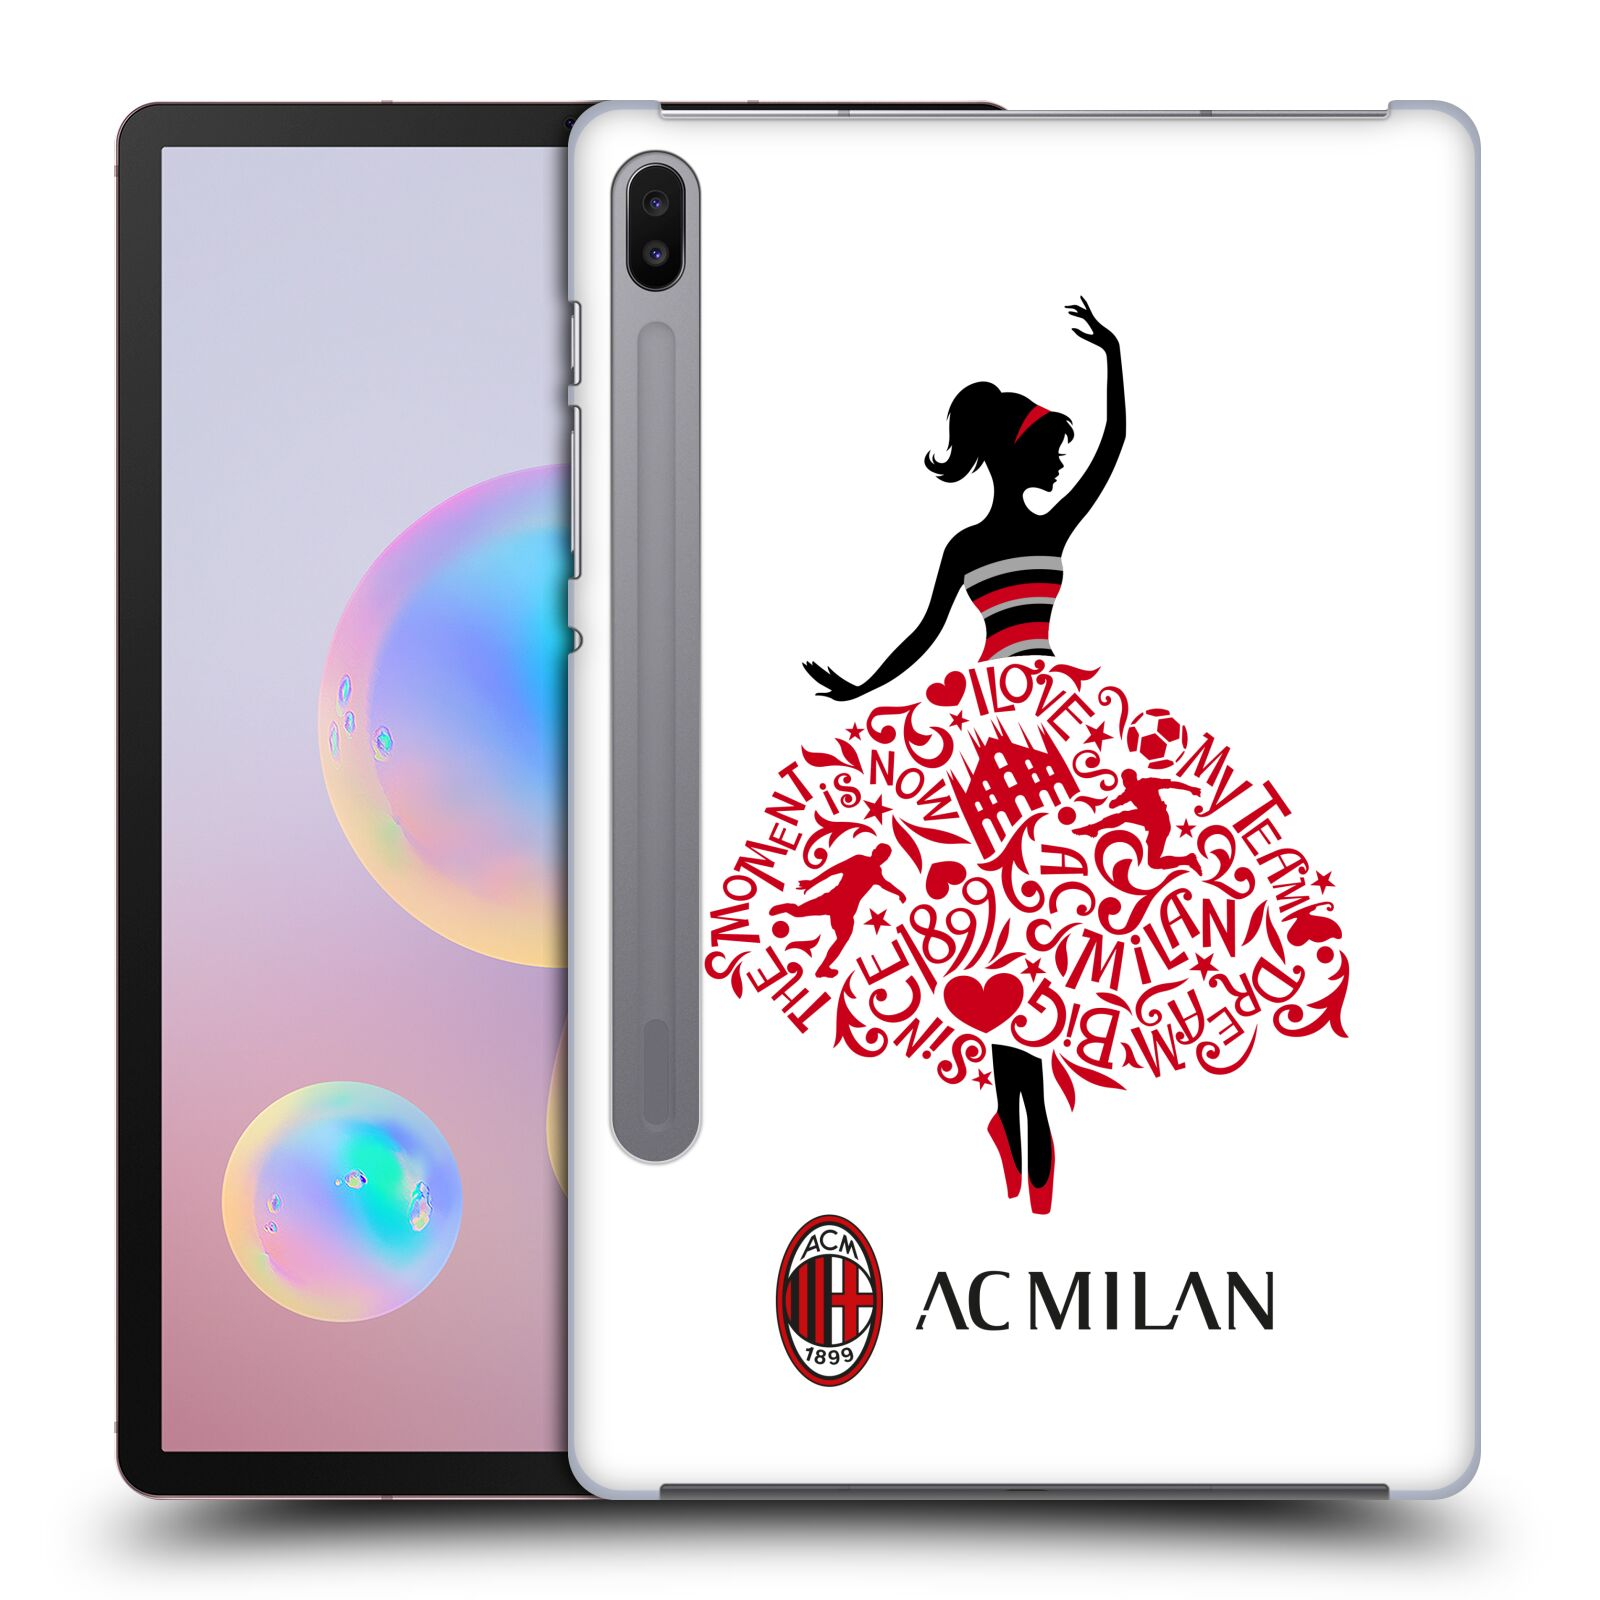 Official AC Milan 2018/19 Children Dream Big Case for Samsung Galaxy Tab S6 (2019)